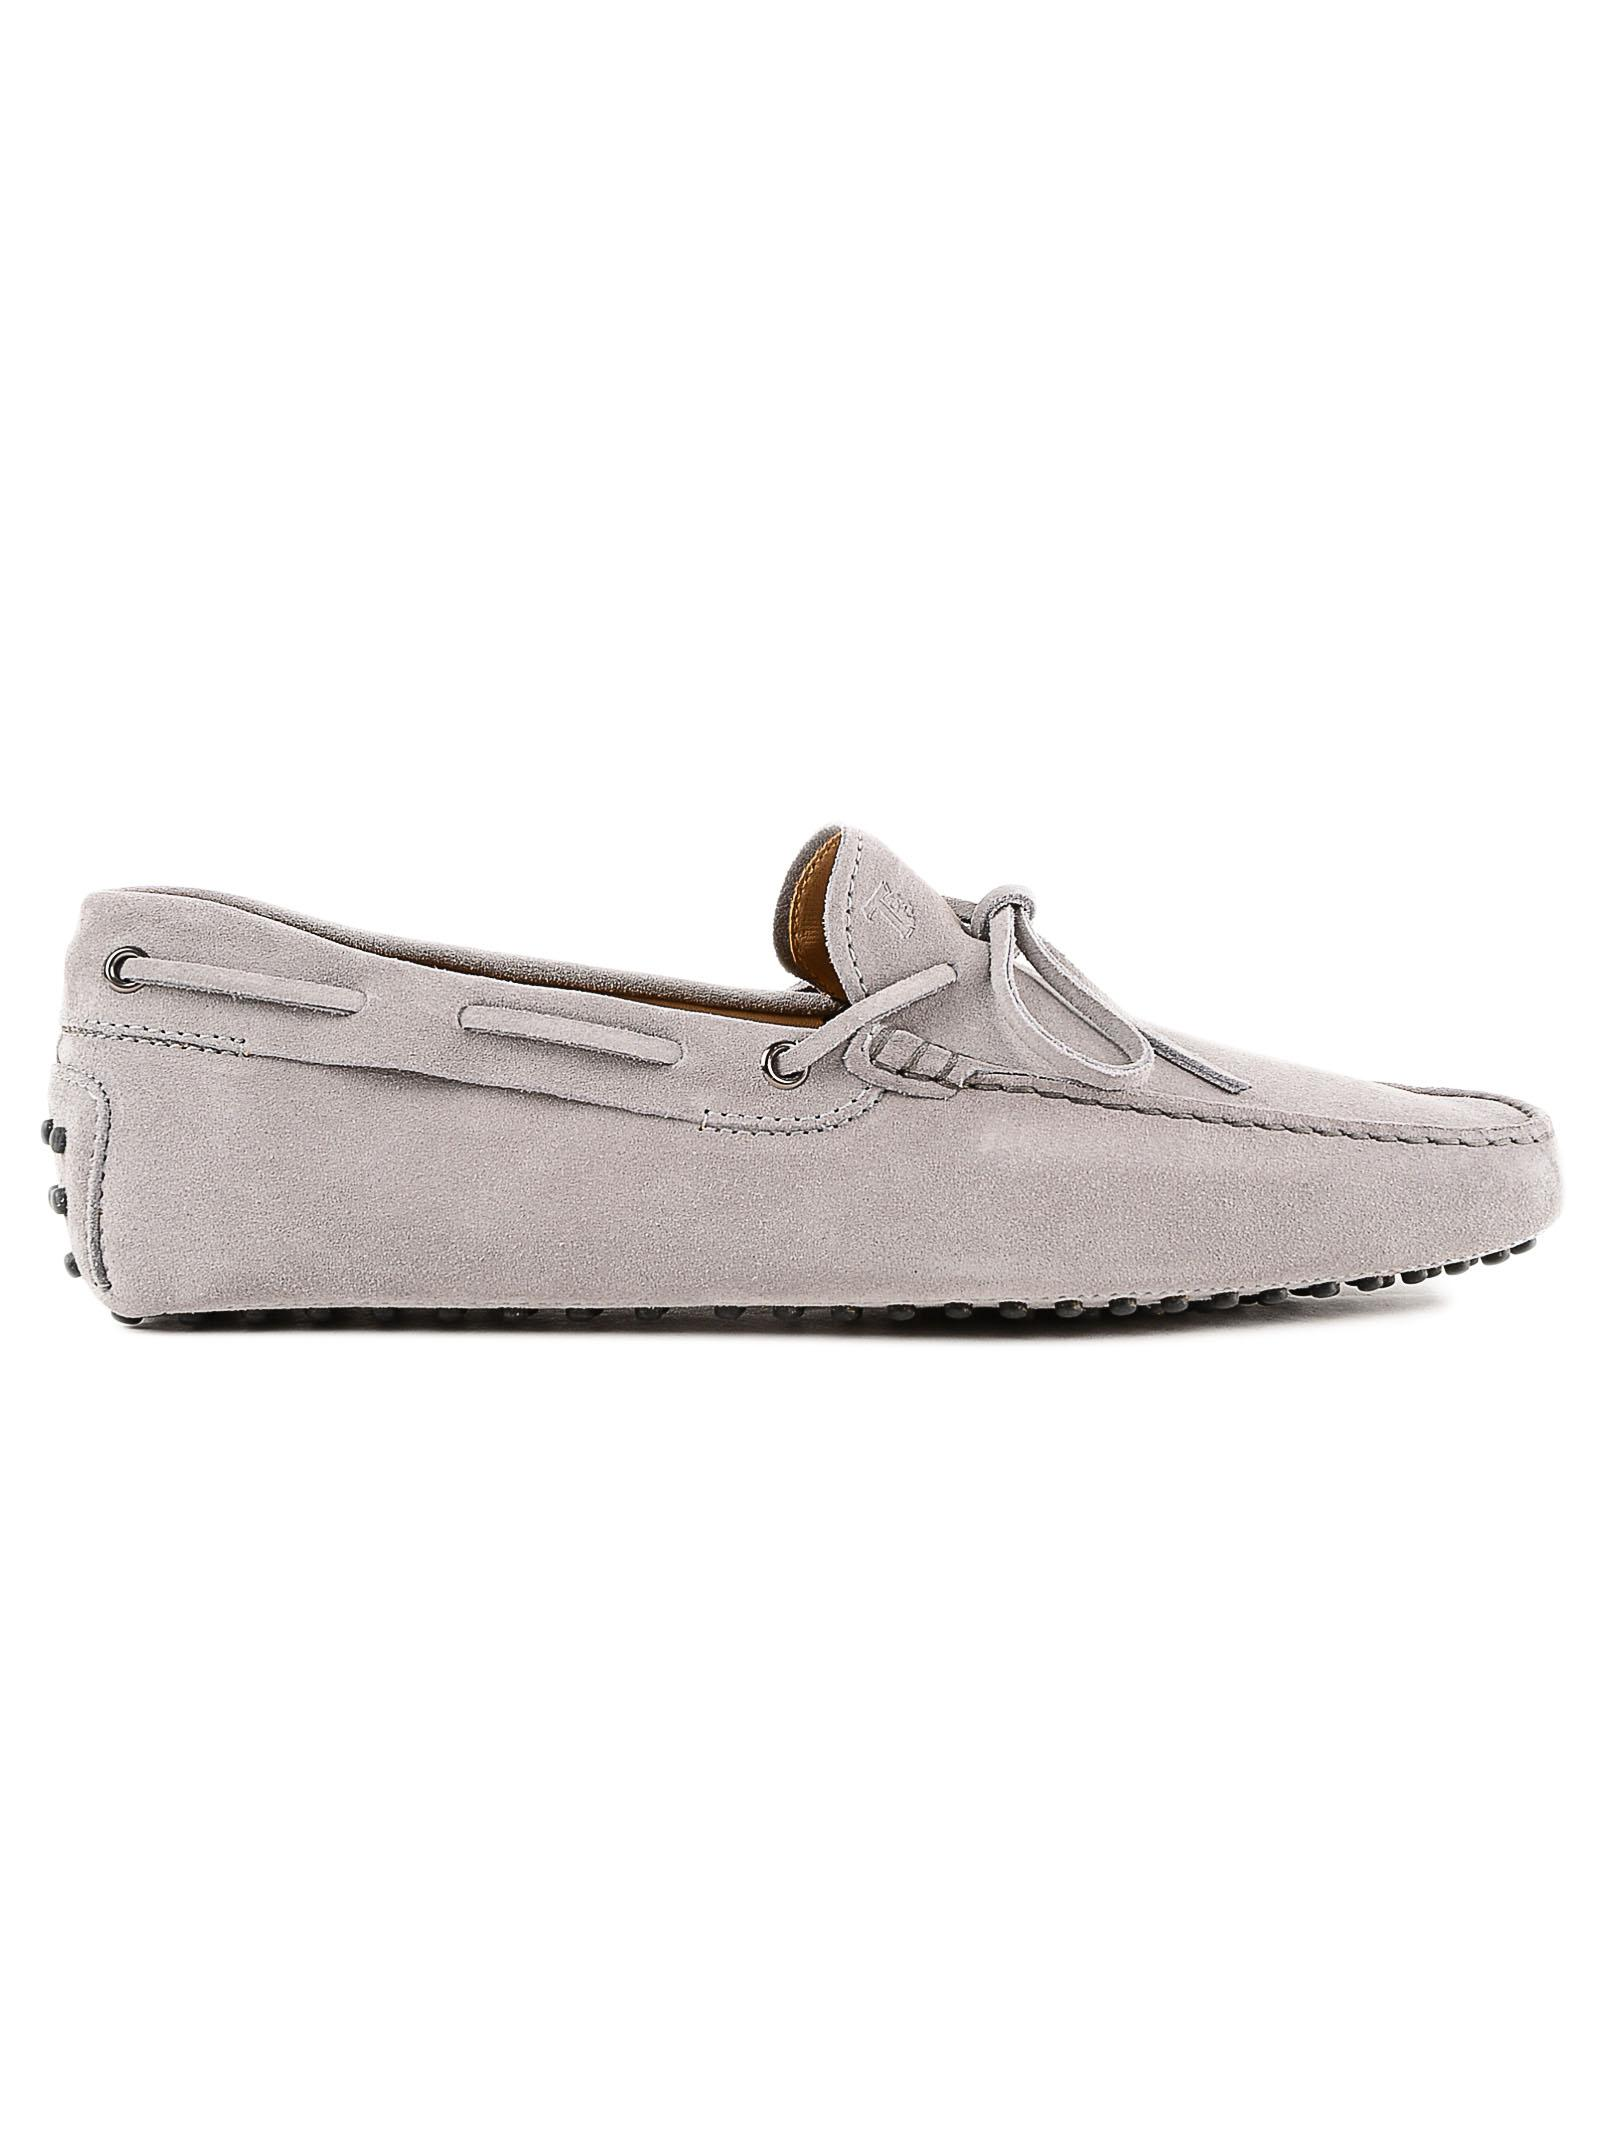 d68f396f2b7 Lyst - Tod s New Laccetto Gommini 122 in Gray for Men - Save 5%